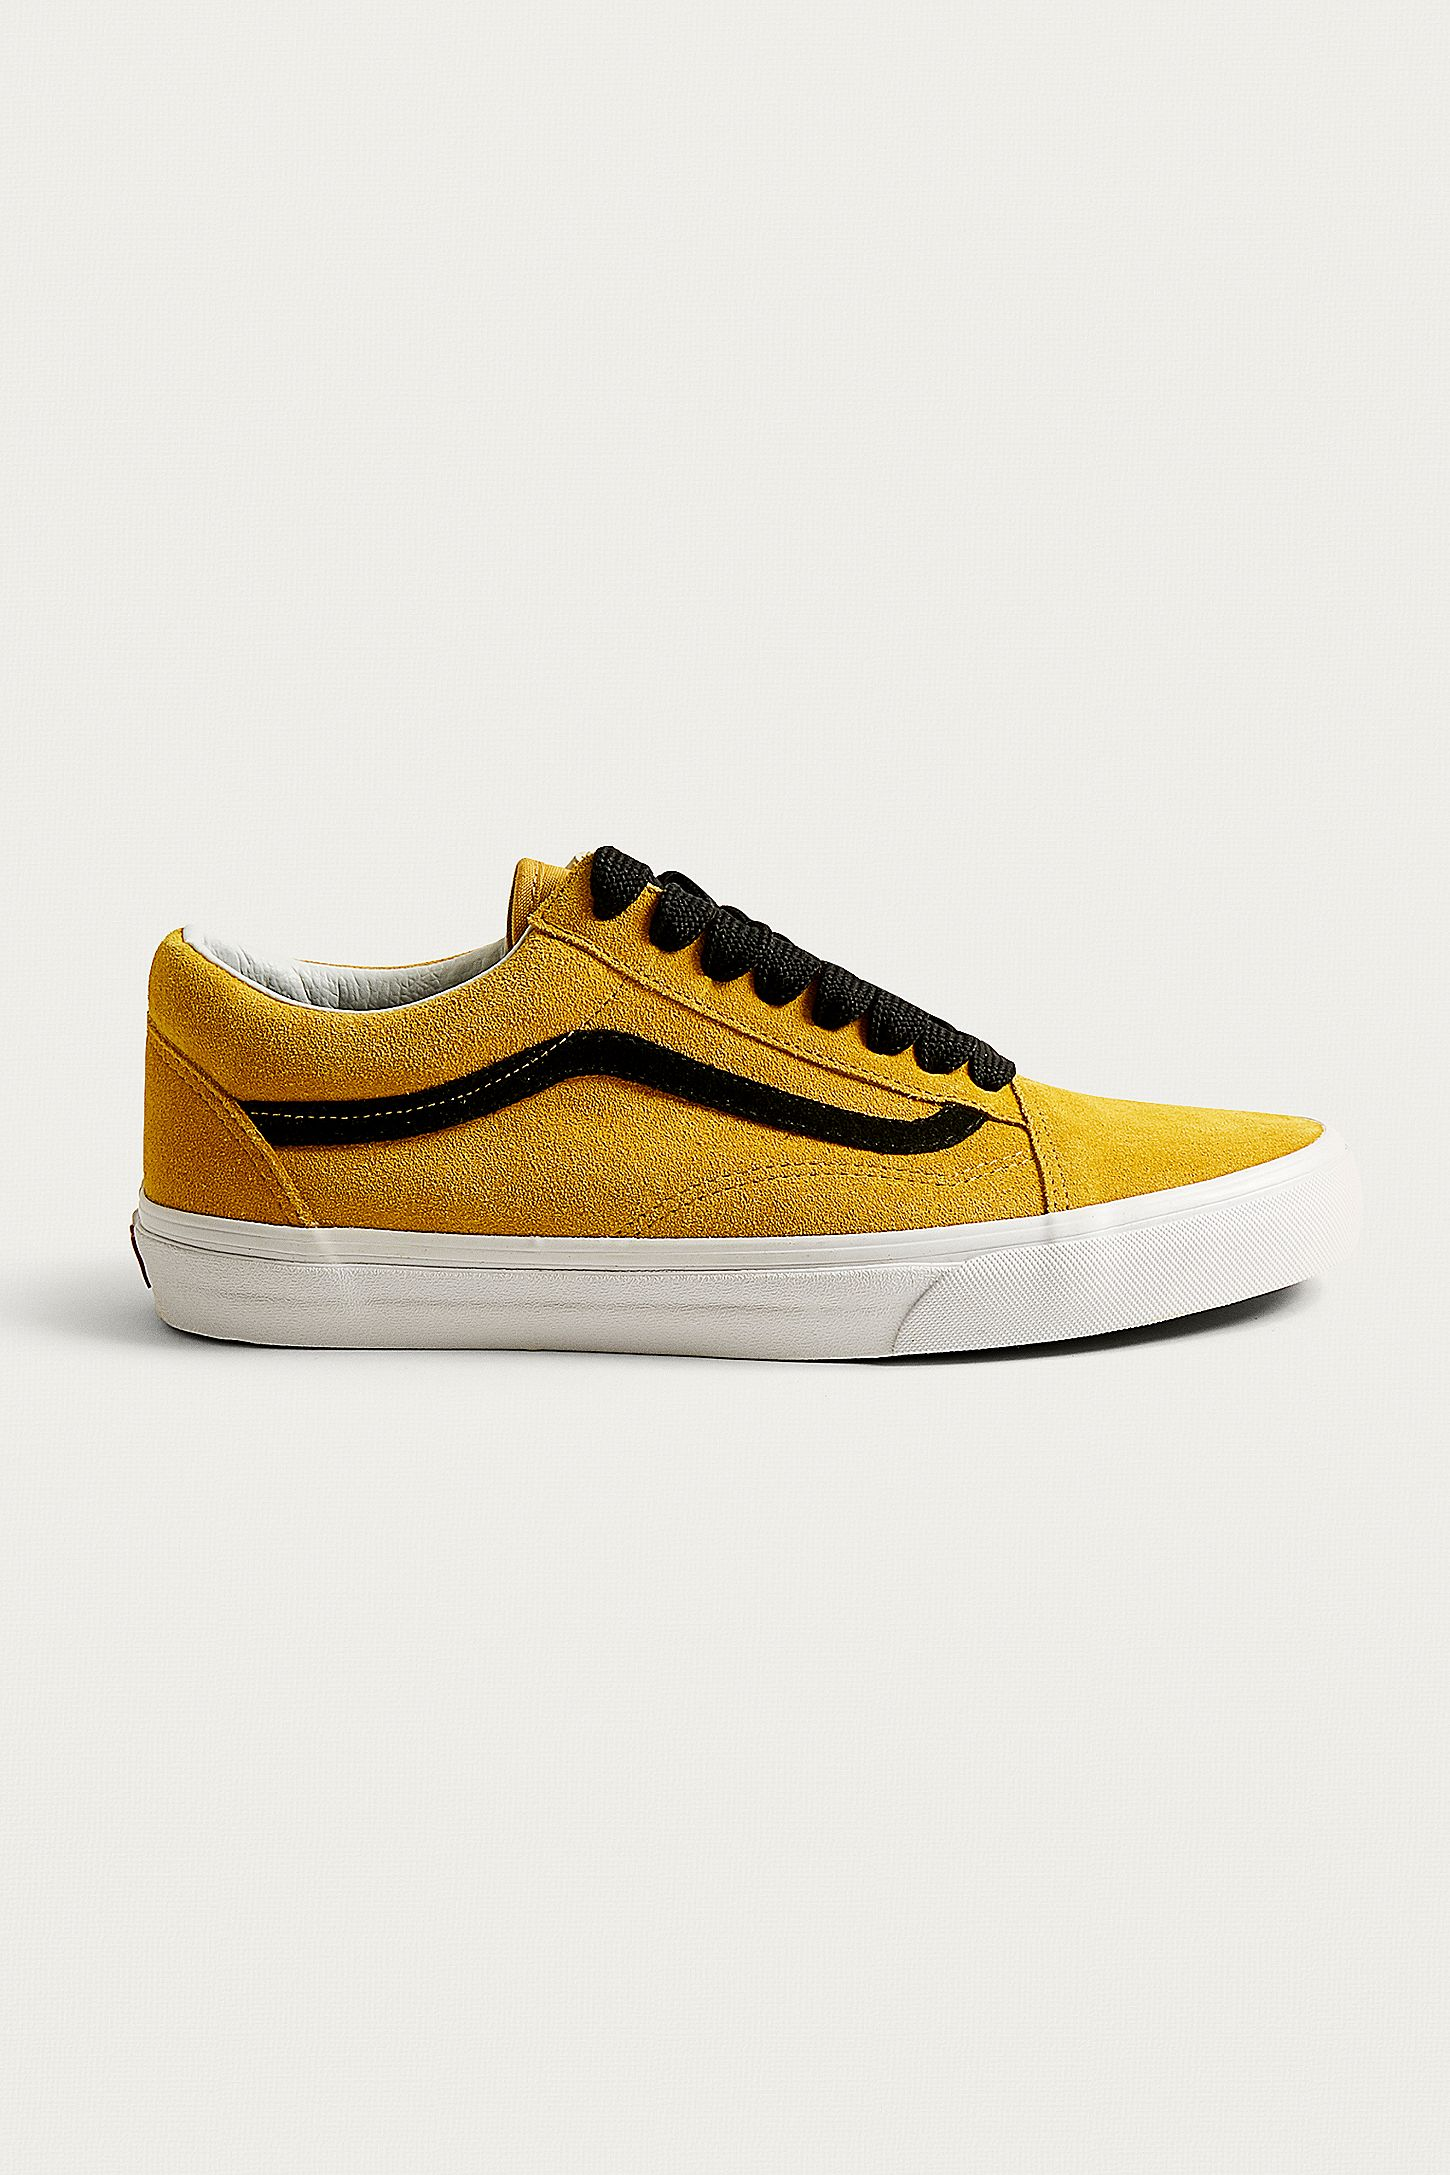 5c0b7fdc58e5 Vans Old Skool Suede Porcini Trainers